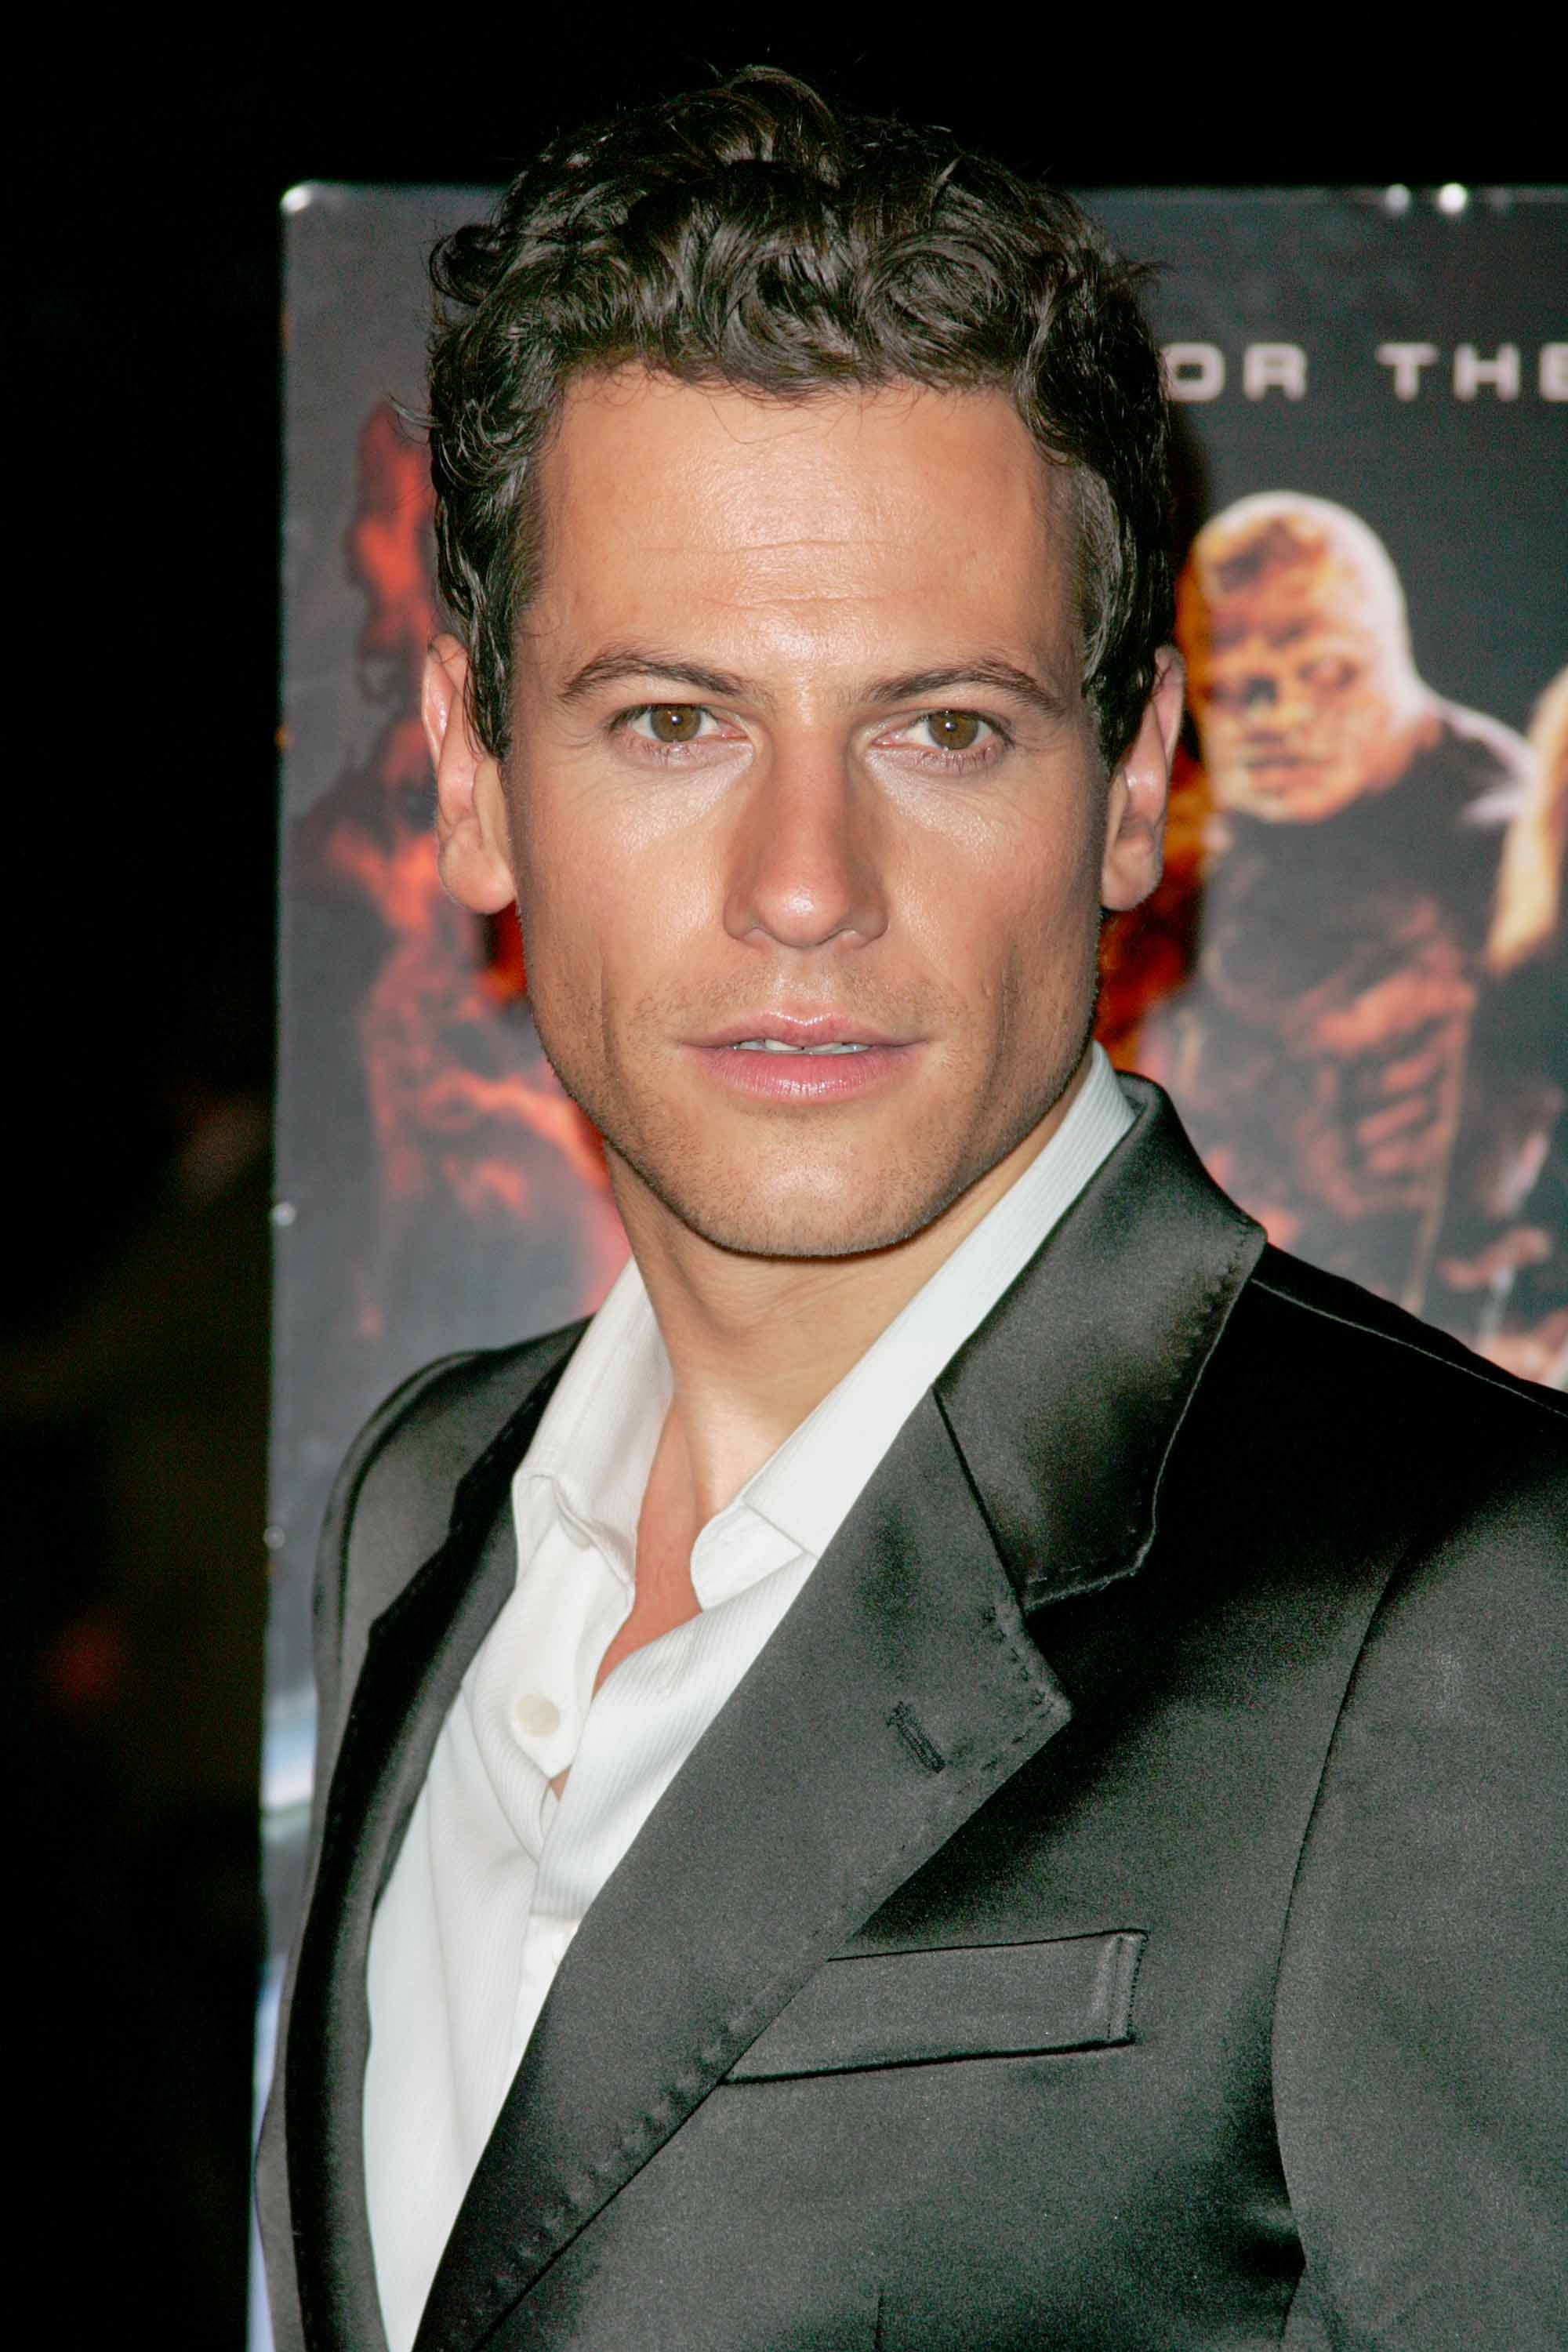 The 43-year old son of father Peter Gruffudd and mother Gillian Gruffudd, 180 cm tall Ioan Gruffudd in 2017 photo